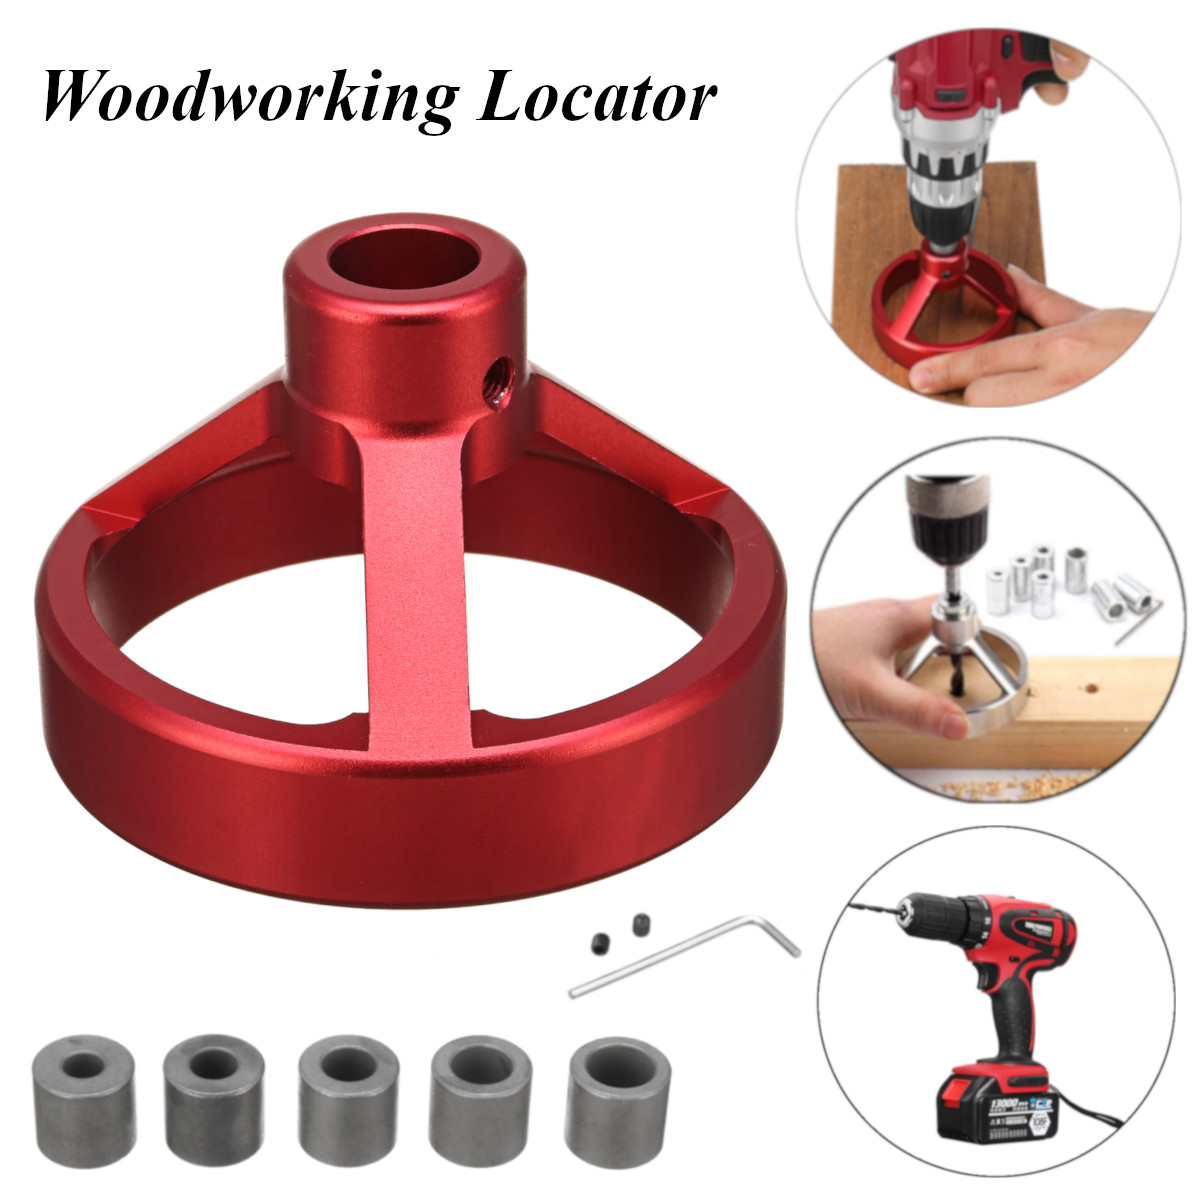 08560 Carpentry Puncher/Drill Vertical Fixture/Roundwood Tenon Hole Puncher/Woodworking Woodworking Locator Puncher